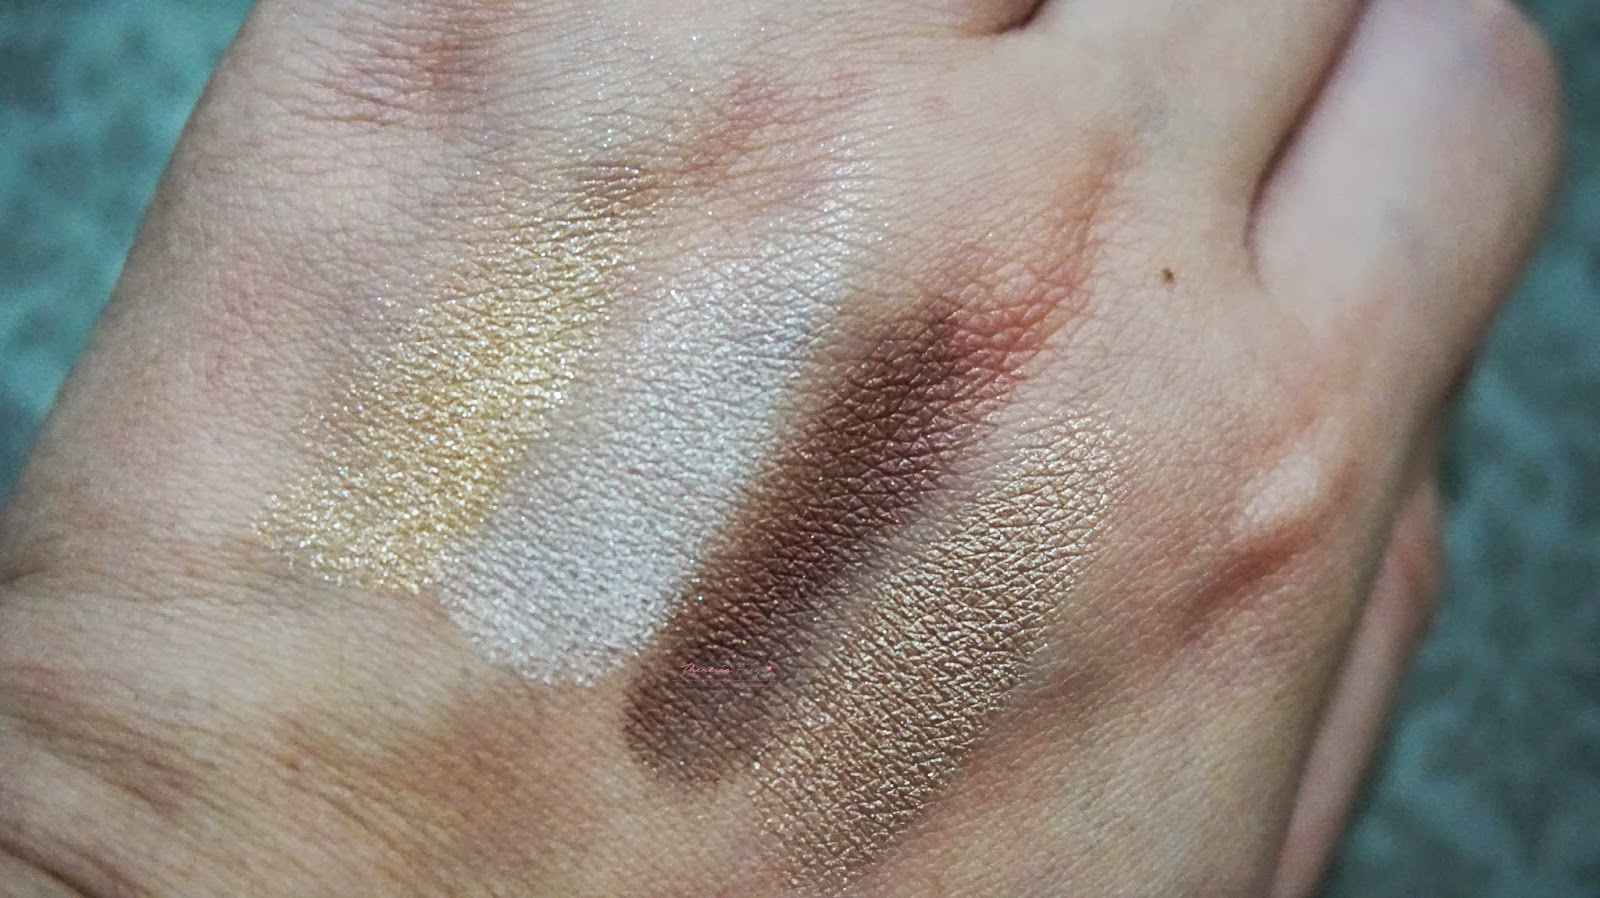 LANEIGE PURE RADIANT SHADOW NO.2 SHINE GOLD, the review, the swatches and the fotd. The first Korean brand eyeshadow that has a great pigmentation, texture and longevity. Easy to blend too. Shade in number 2 shine gold. A gold eyeshadow kit from Laneige.